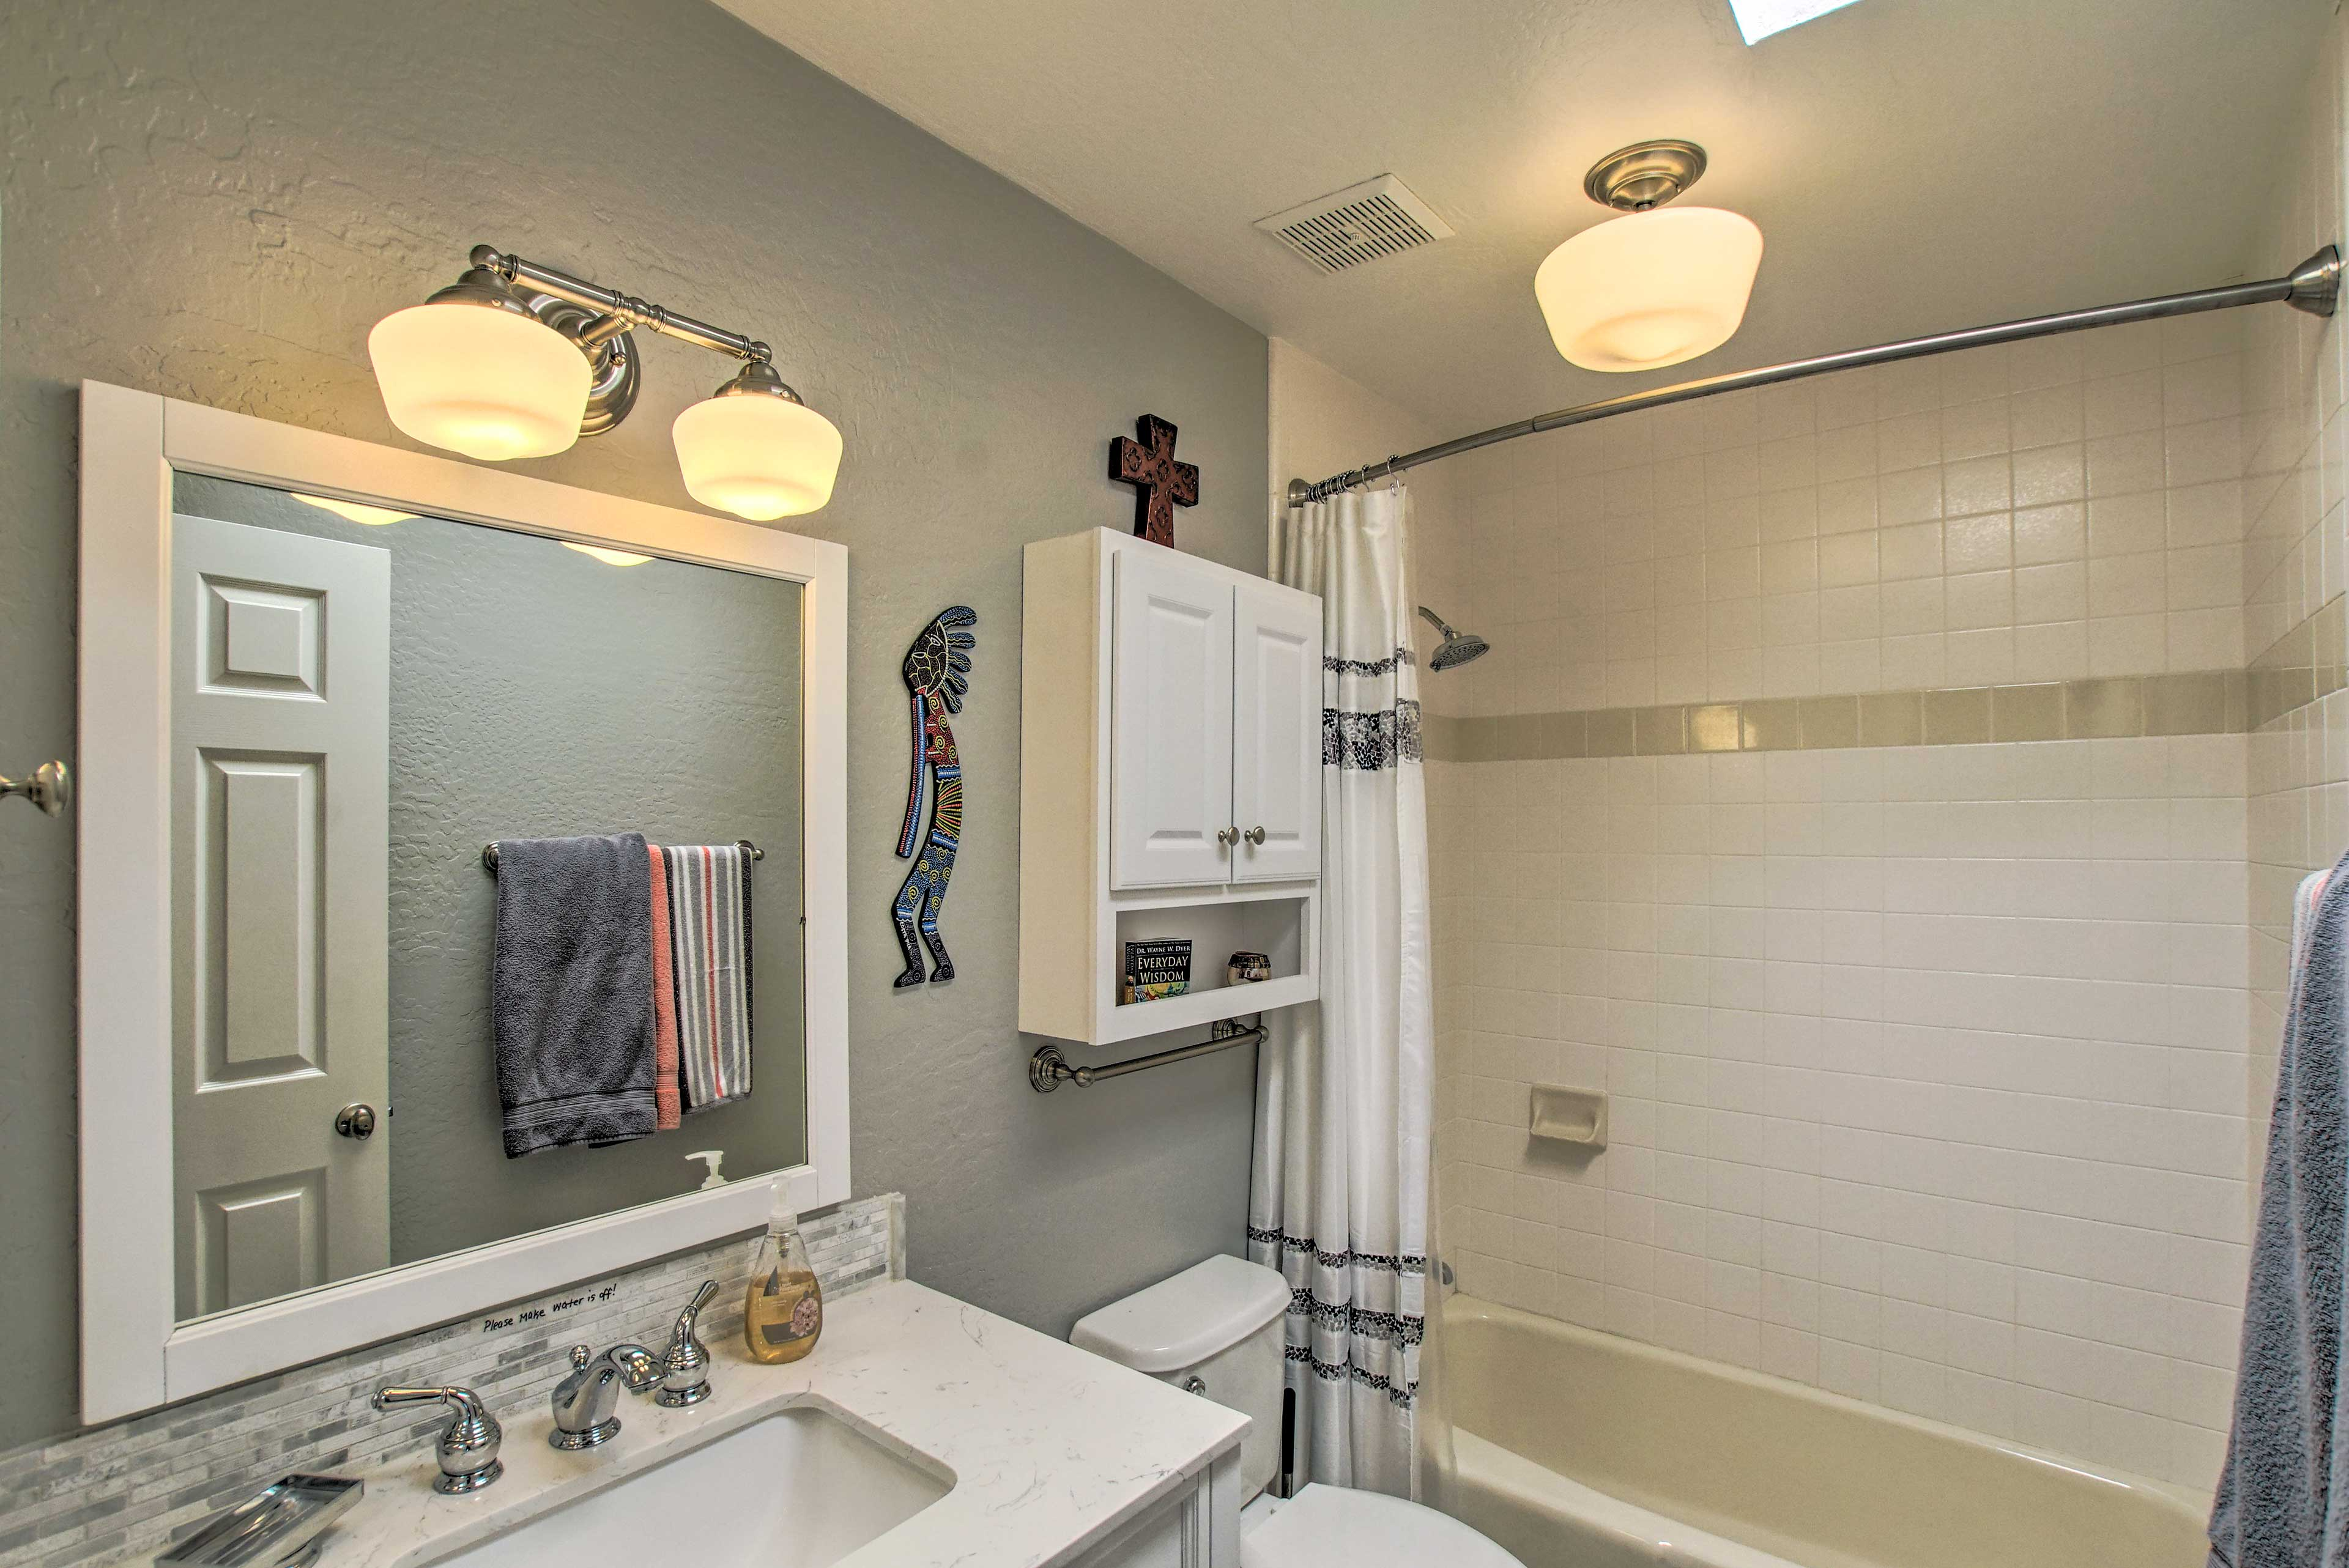 One of 2 full baths, this one hosts a shower/tub combo.